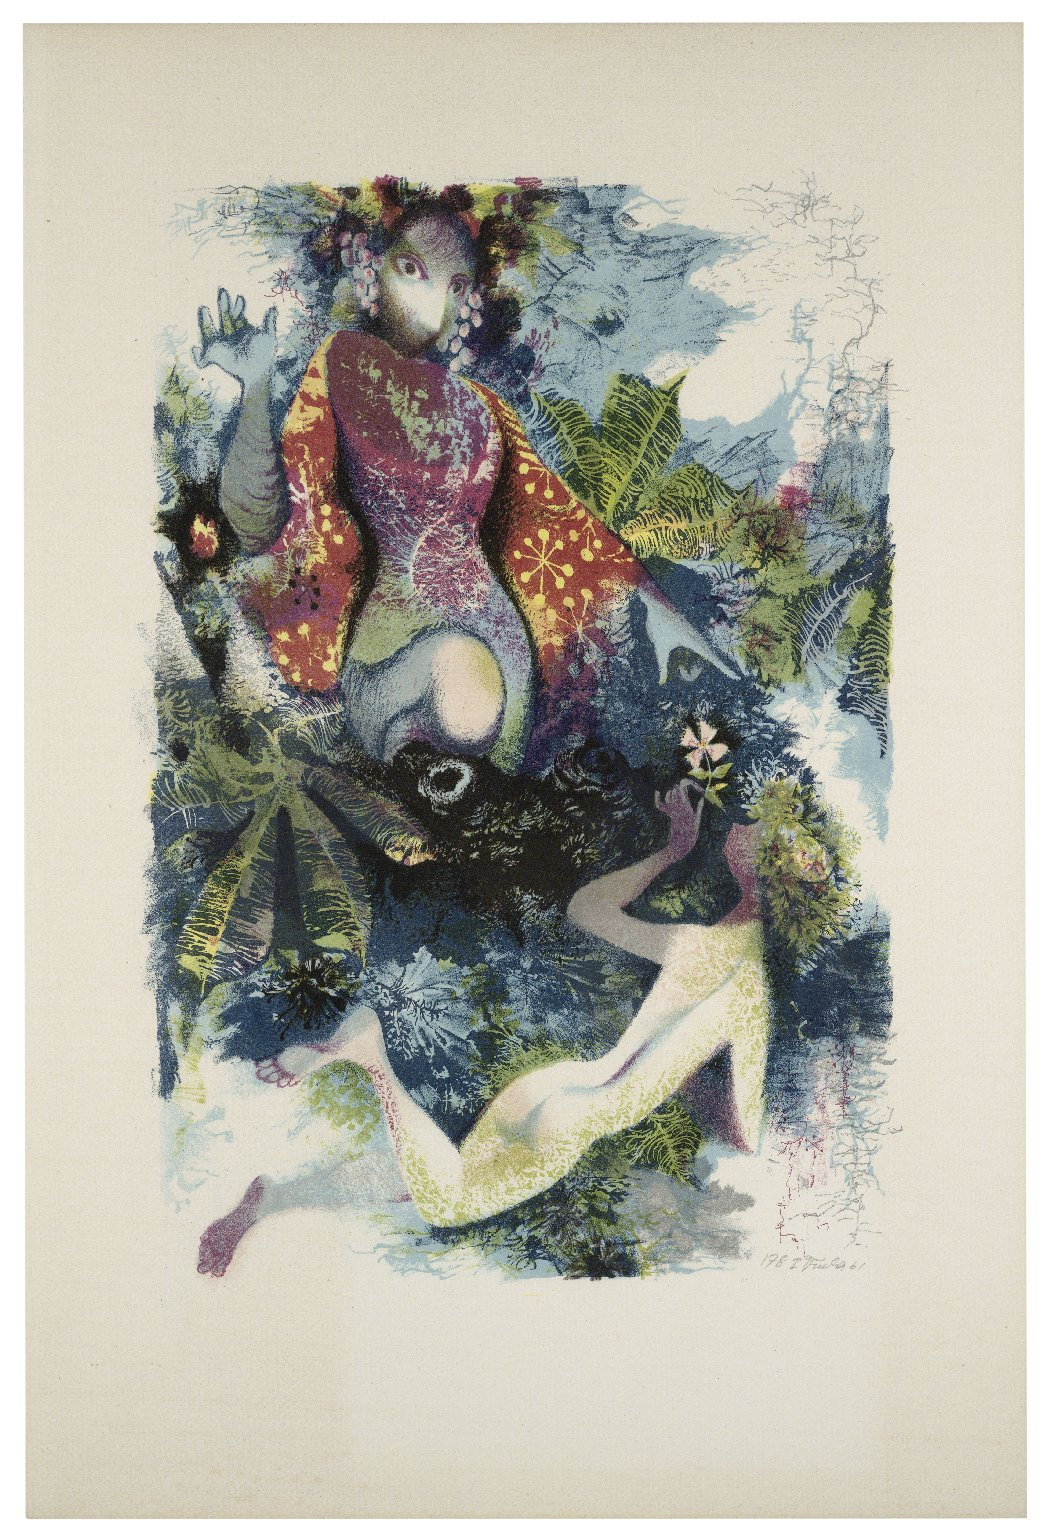 Midsummer Night's Dream lithograph by Jiří Trnka, 1961